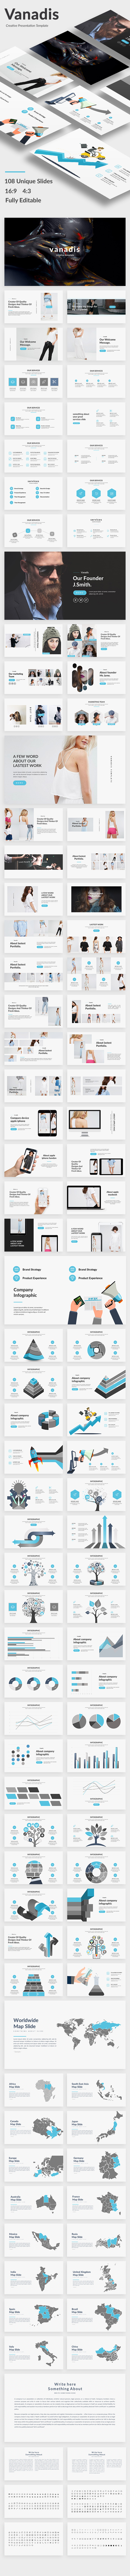 Vanadis Powerpoint - Creative PowerPoint Templates